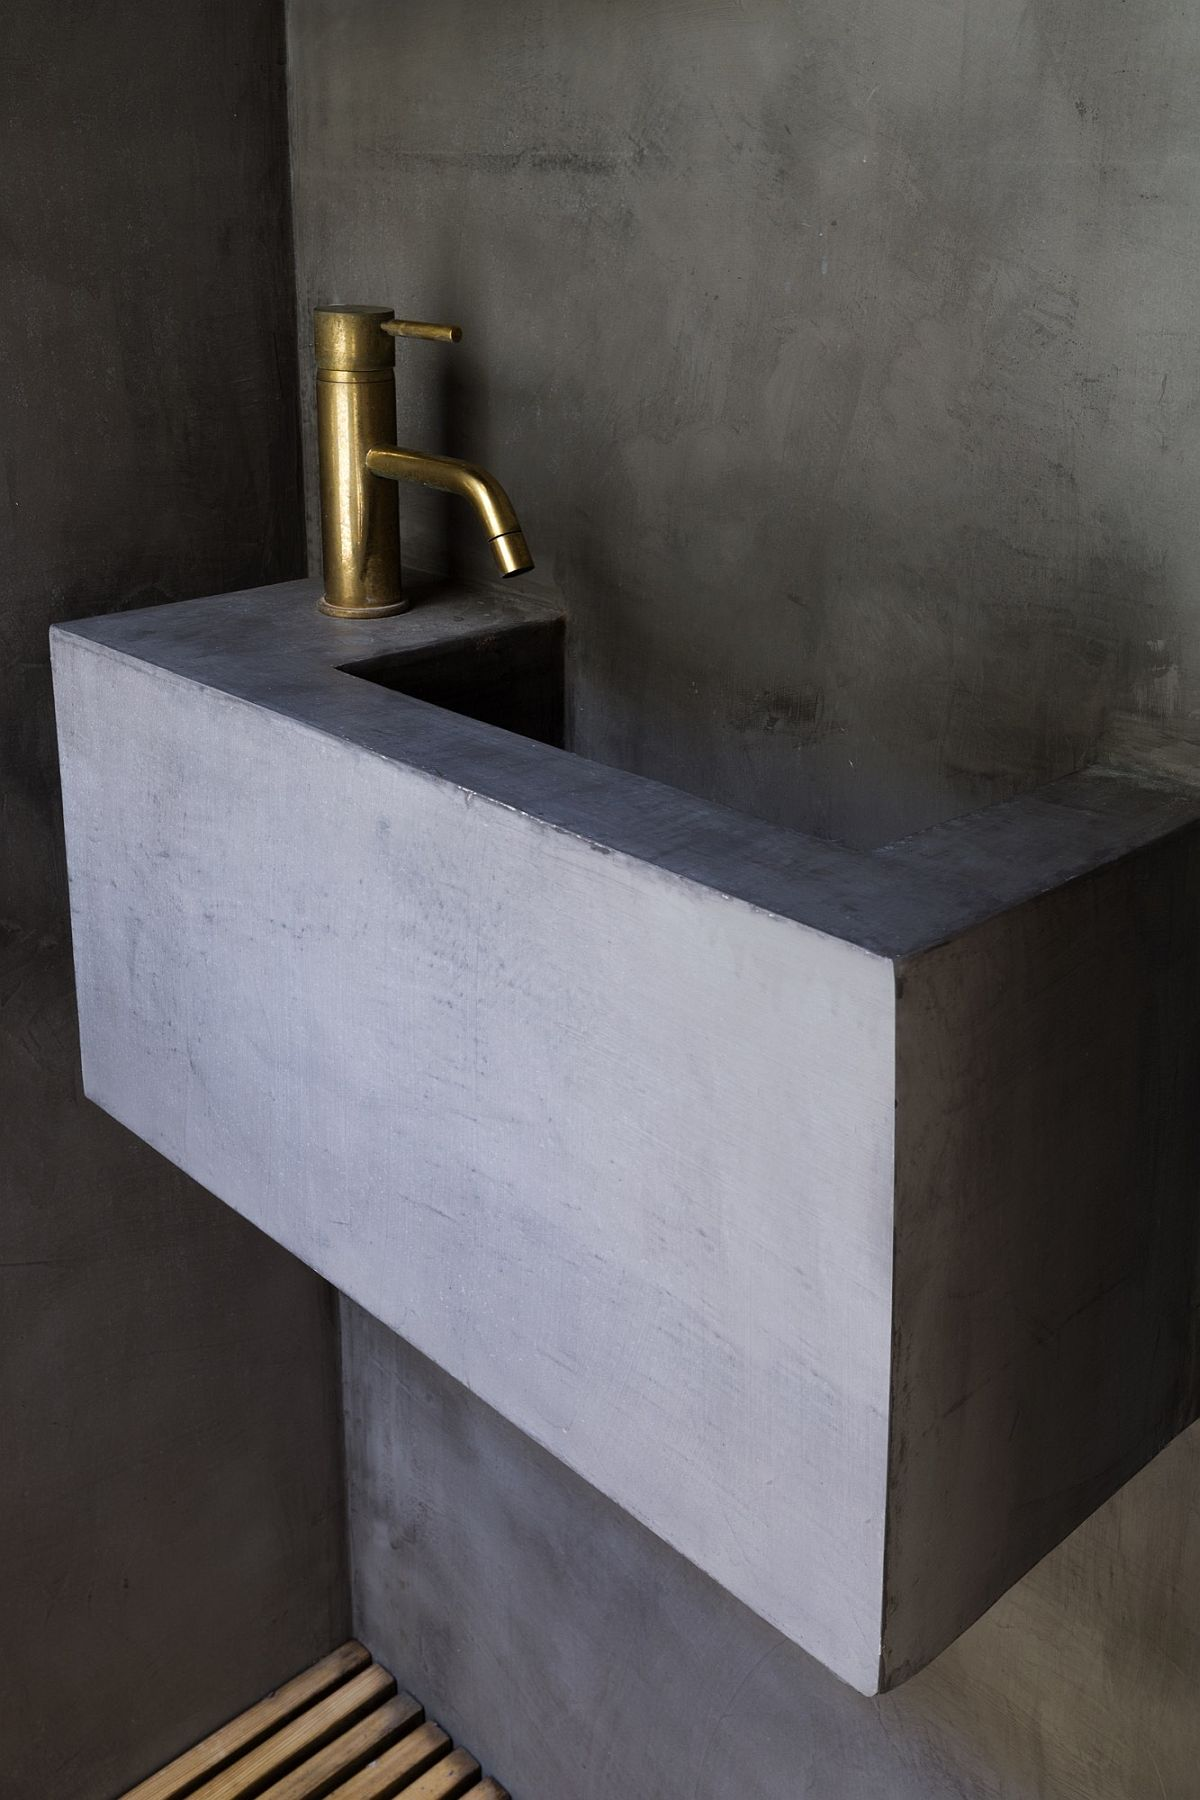 Concrete sink for the contemporary sunken bath